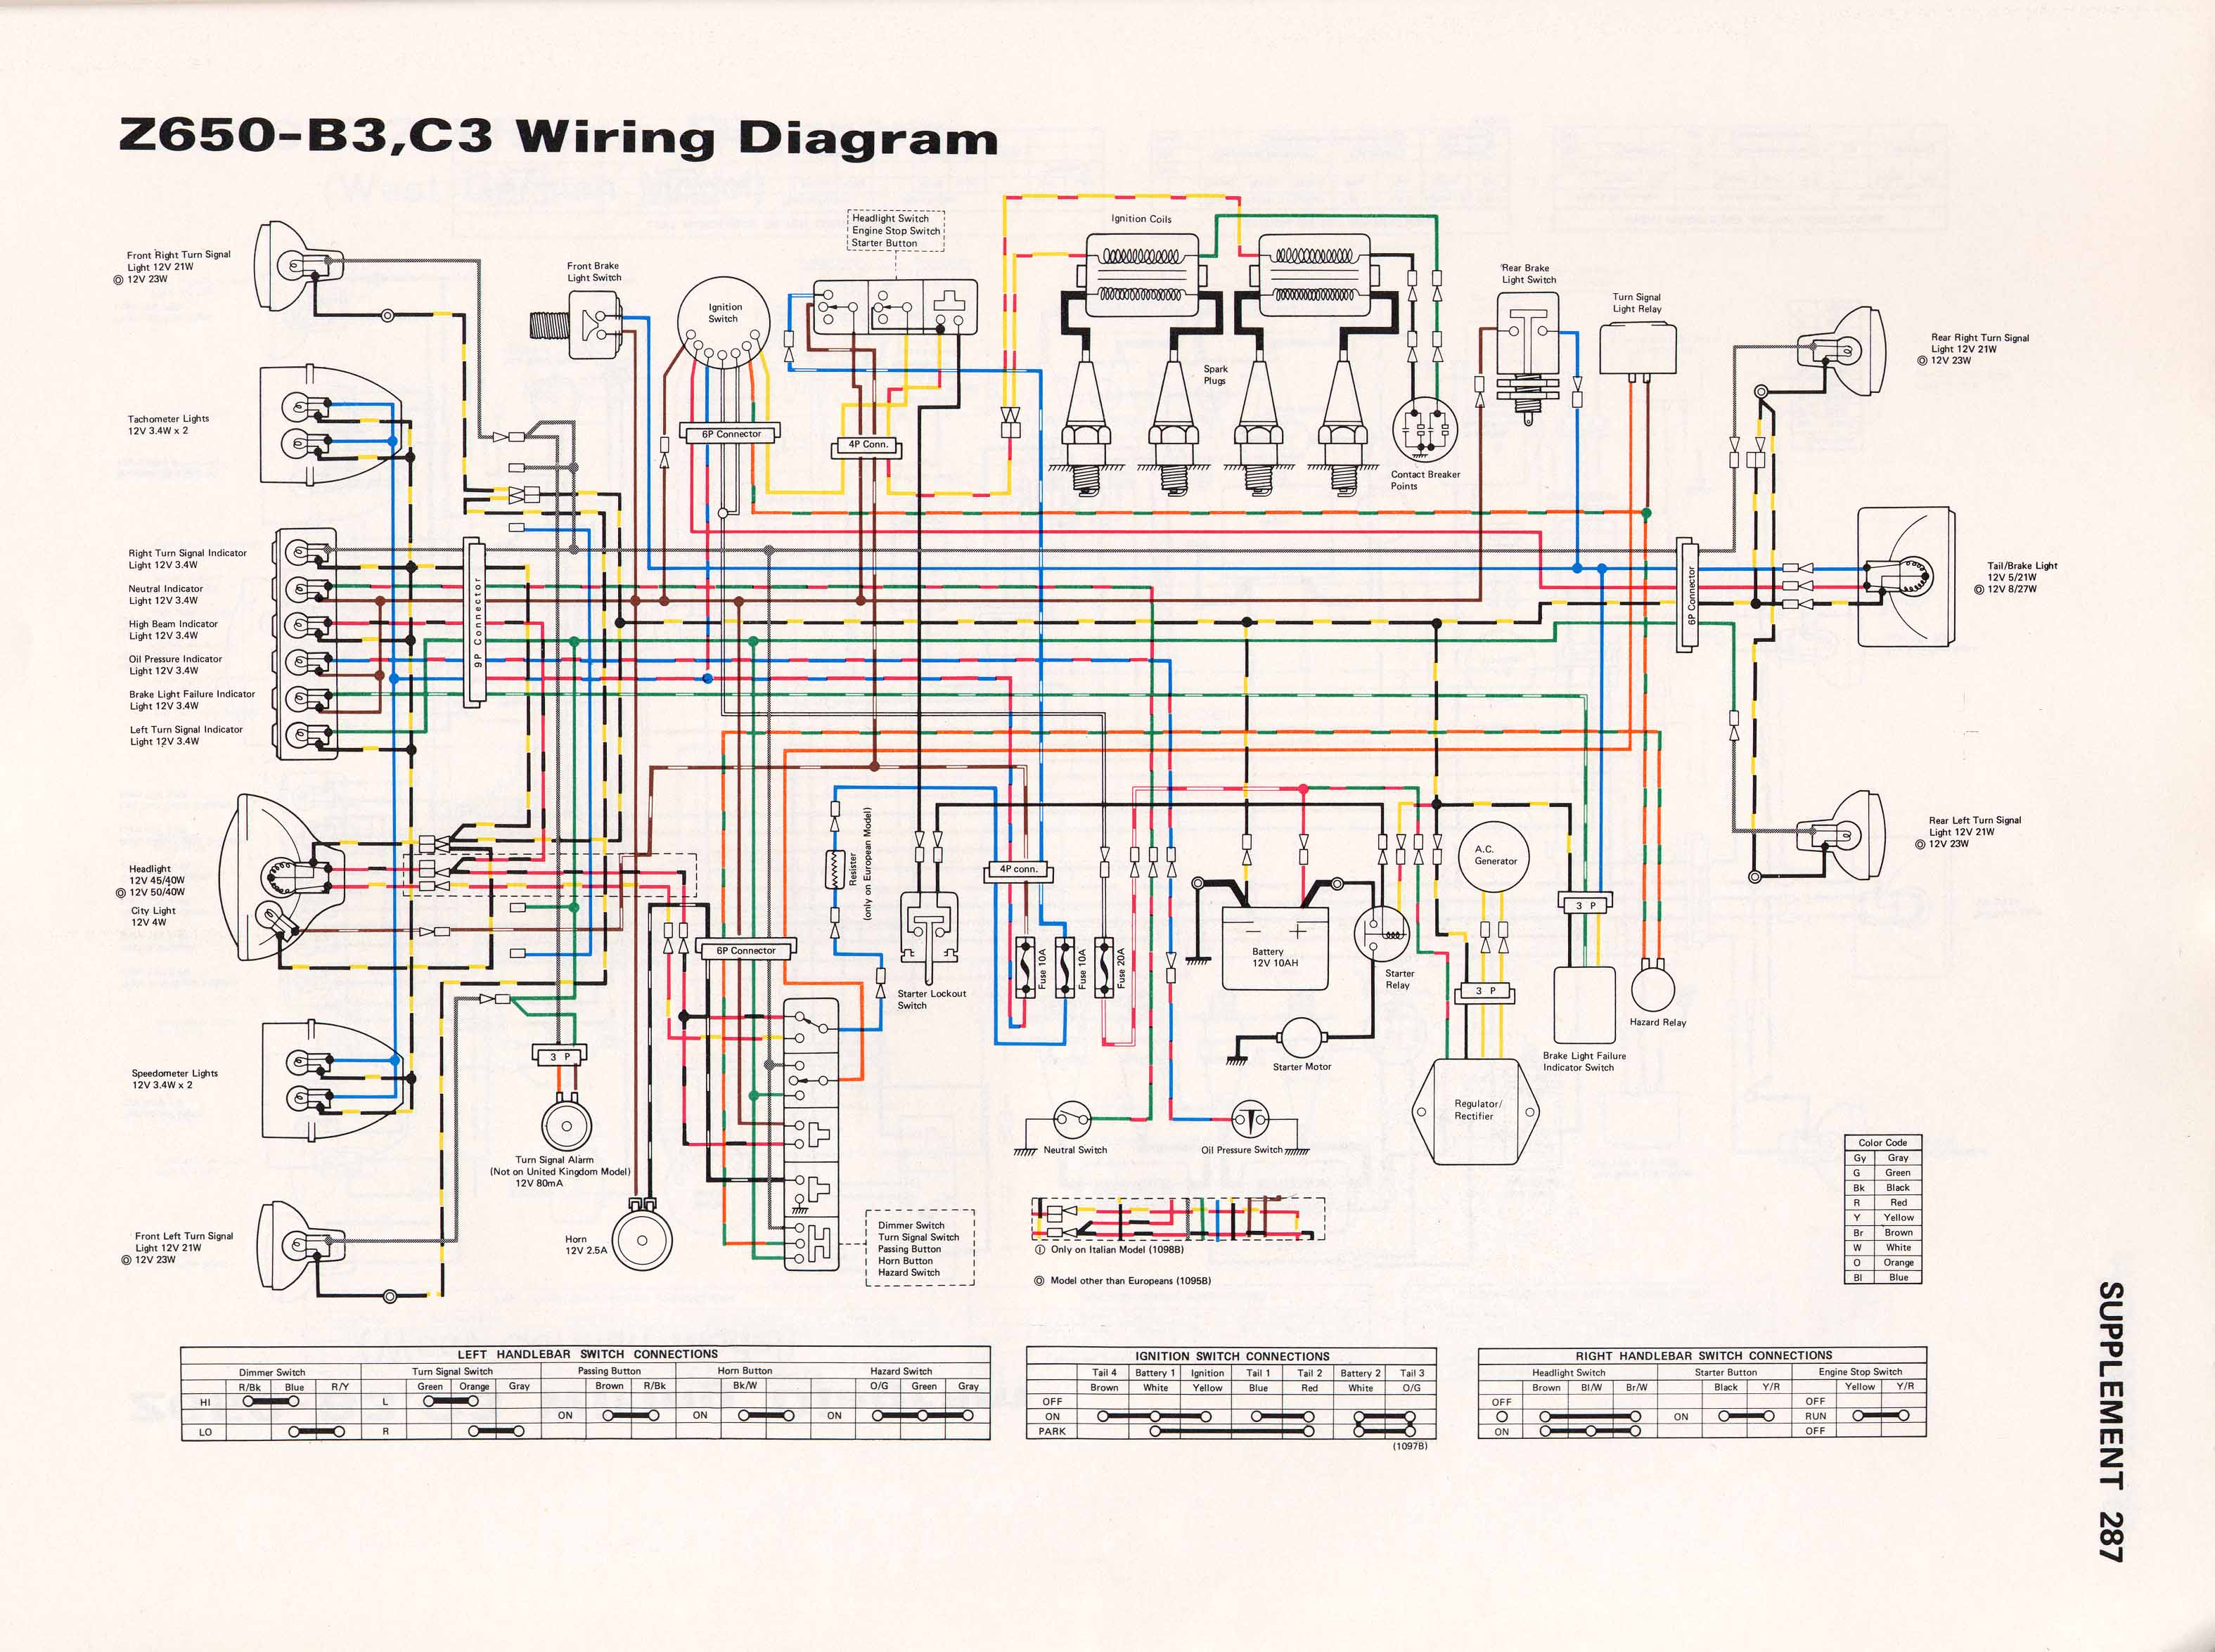 WRG-0626] Kawasaki Kz550 Easy Wiring Diagram on kz650 wiring diagram, z400 wiring diagram, klr650 wiring diagram, ninja 250r wiring diagram, z1000 wiring diagram, fj1100 wiring diagram, kz1000 wiring diagram, kz440 wiring diagram, zx7r wiring diagram, gs 750 wiring diagram, kz750 wiring diagram, kz400 wiring diagram, xs650 wiring diagram, honda wiring diagram, zl1000 wiring diagram, ex500 wiring diagram, ex250 wiring diagram, vulcan 1500 wiring diagram, kz200 wiring diagram, ke175 wiring diagram,